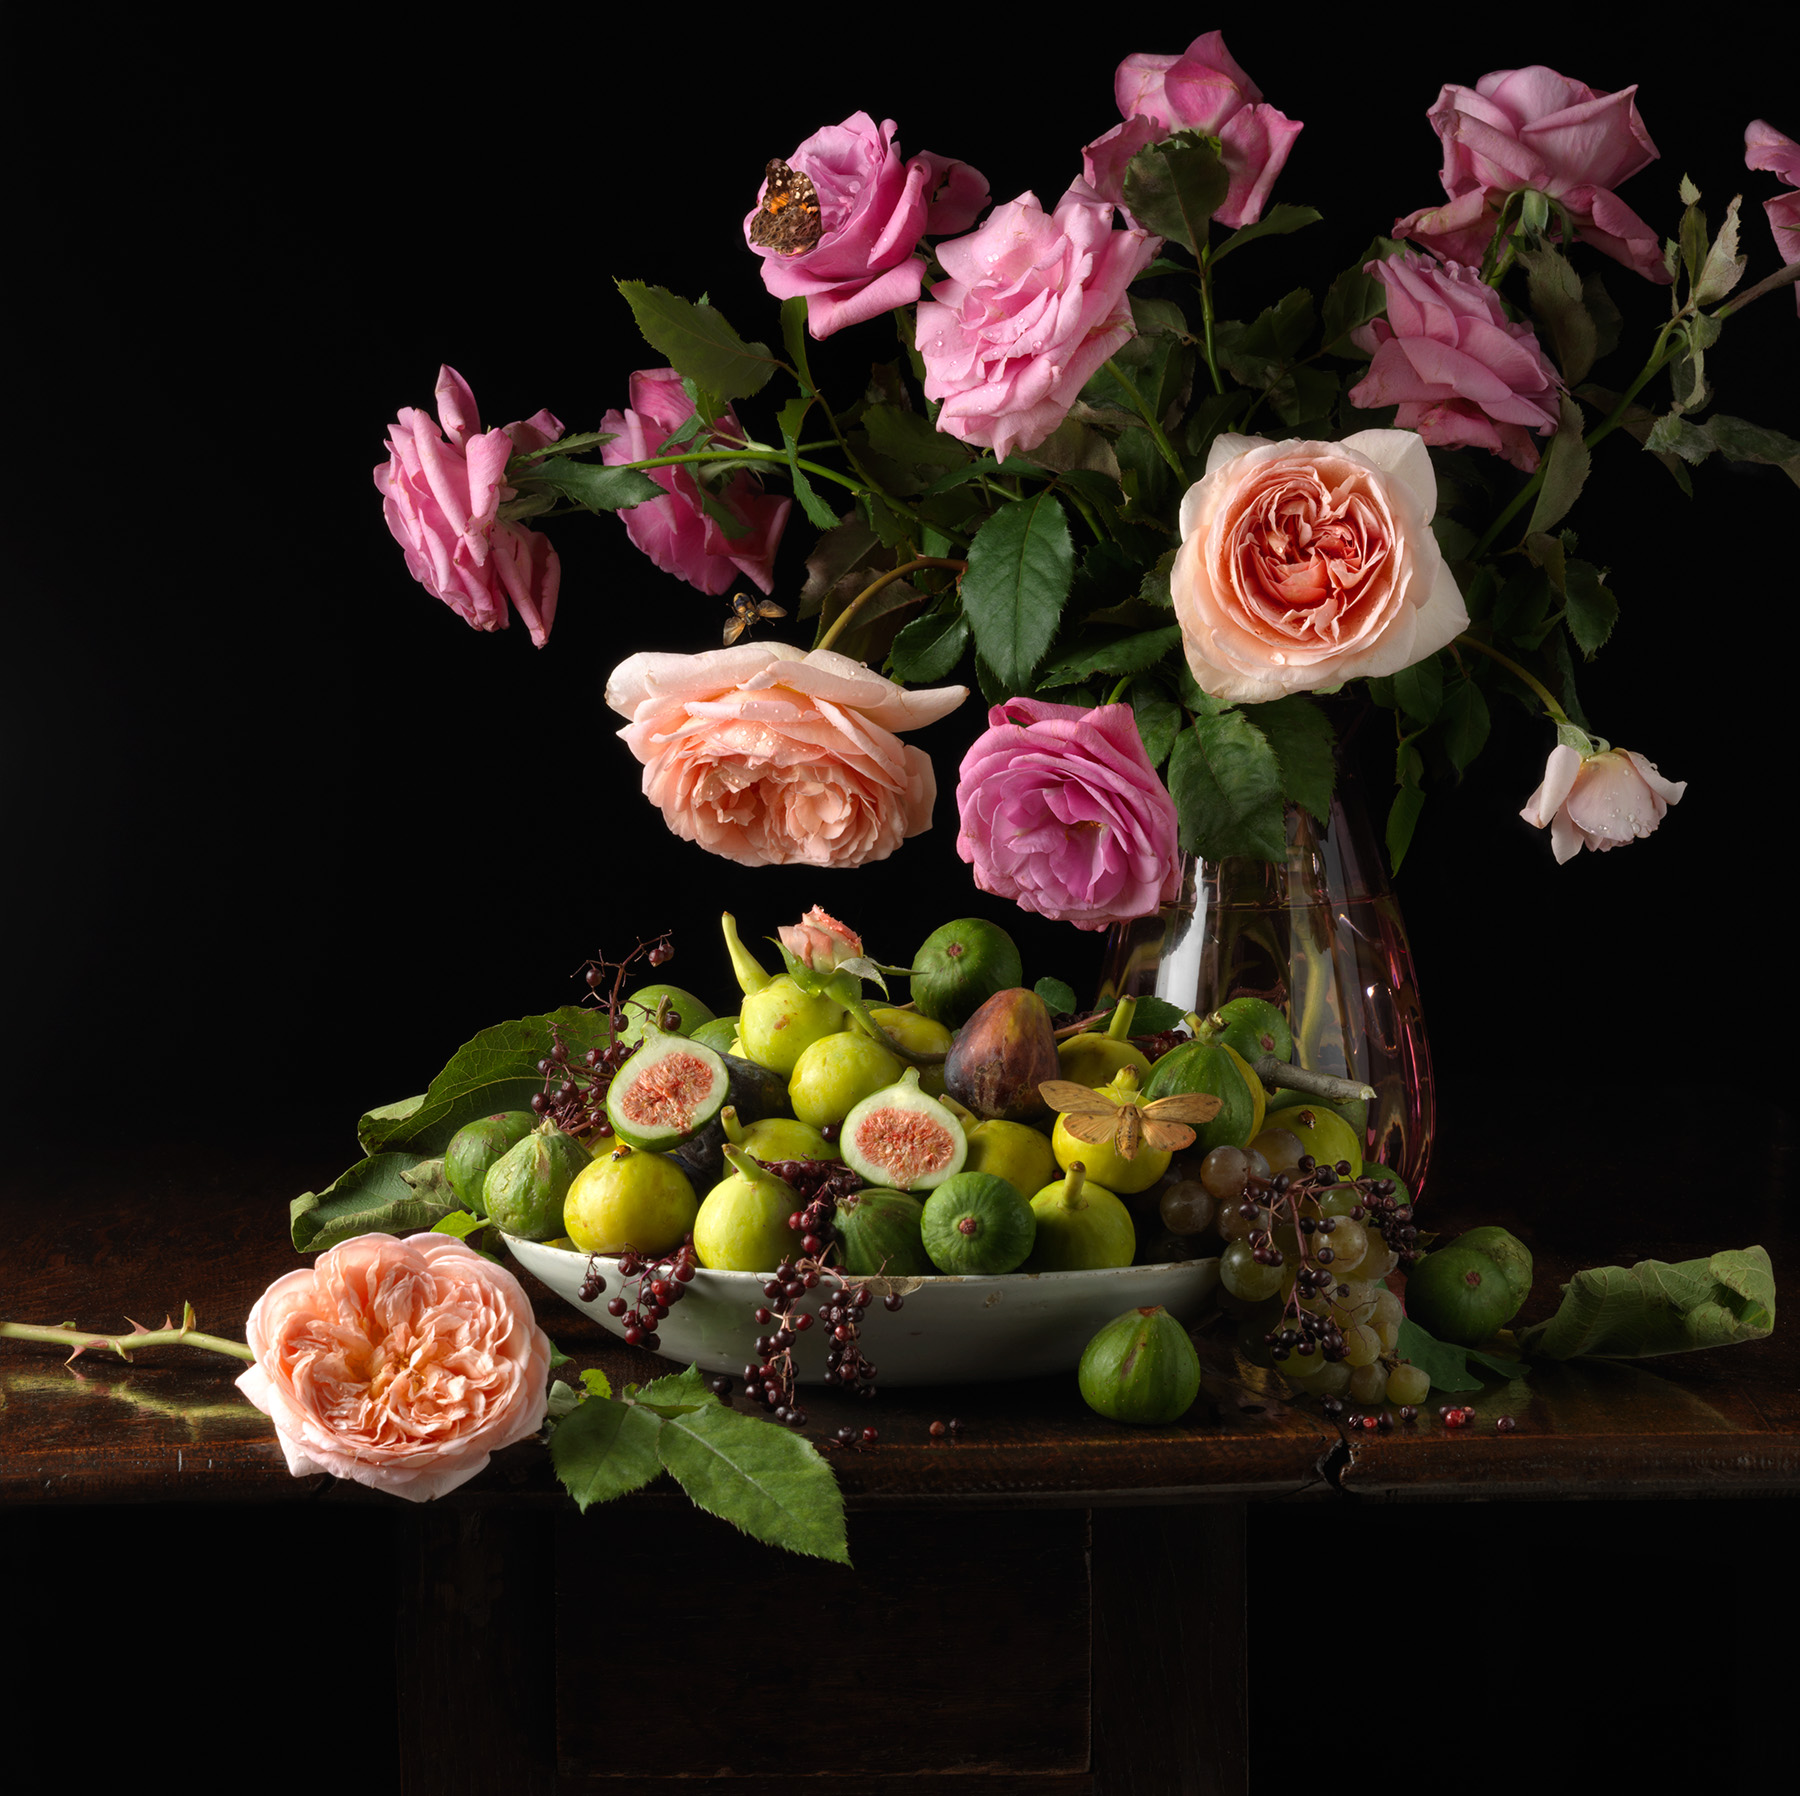 Roses and Figs, 2013